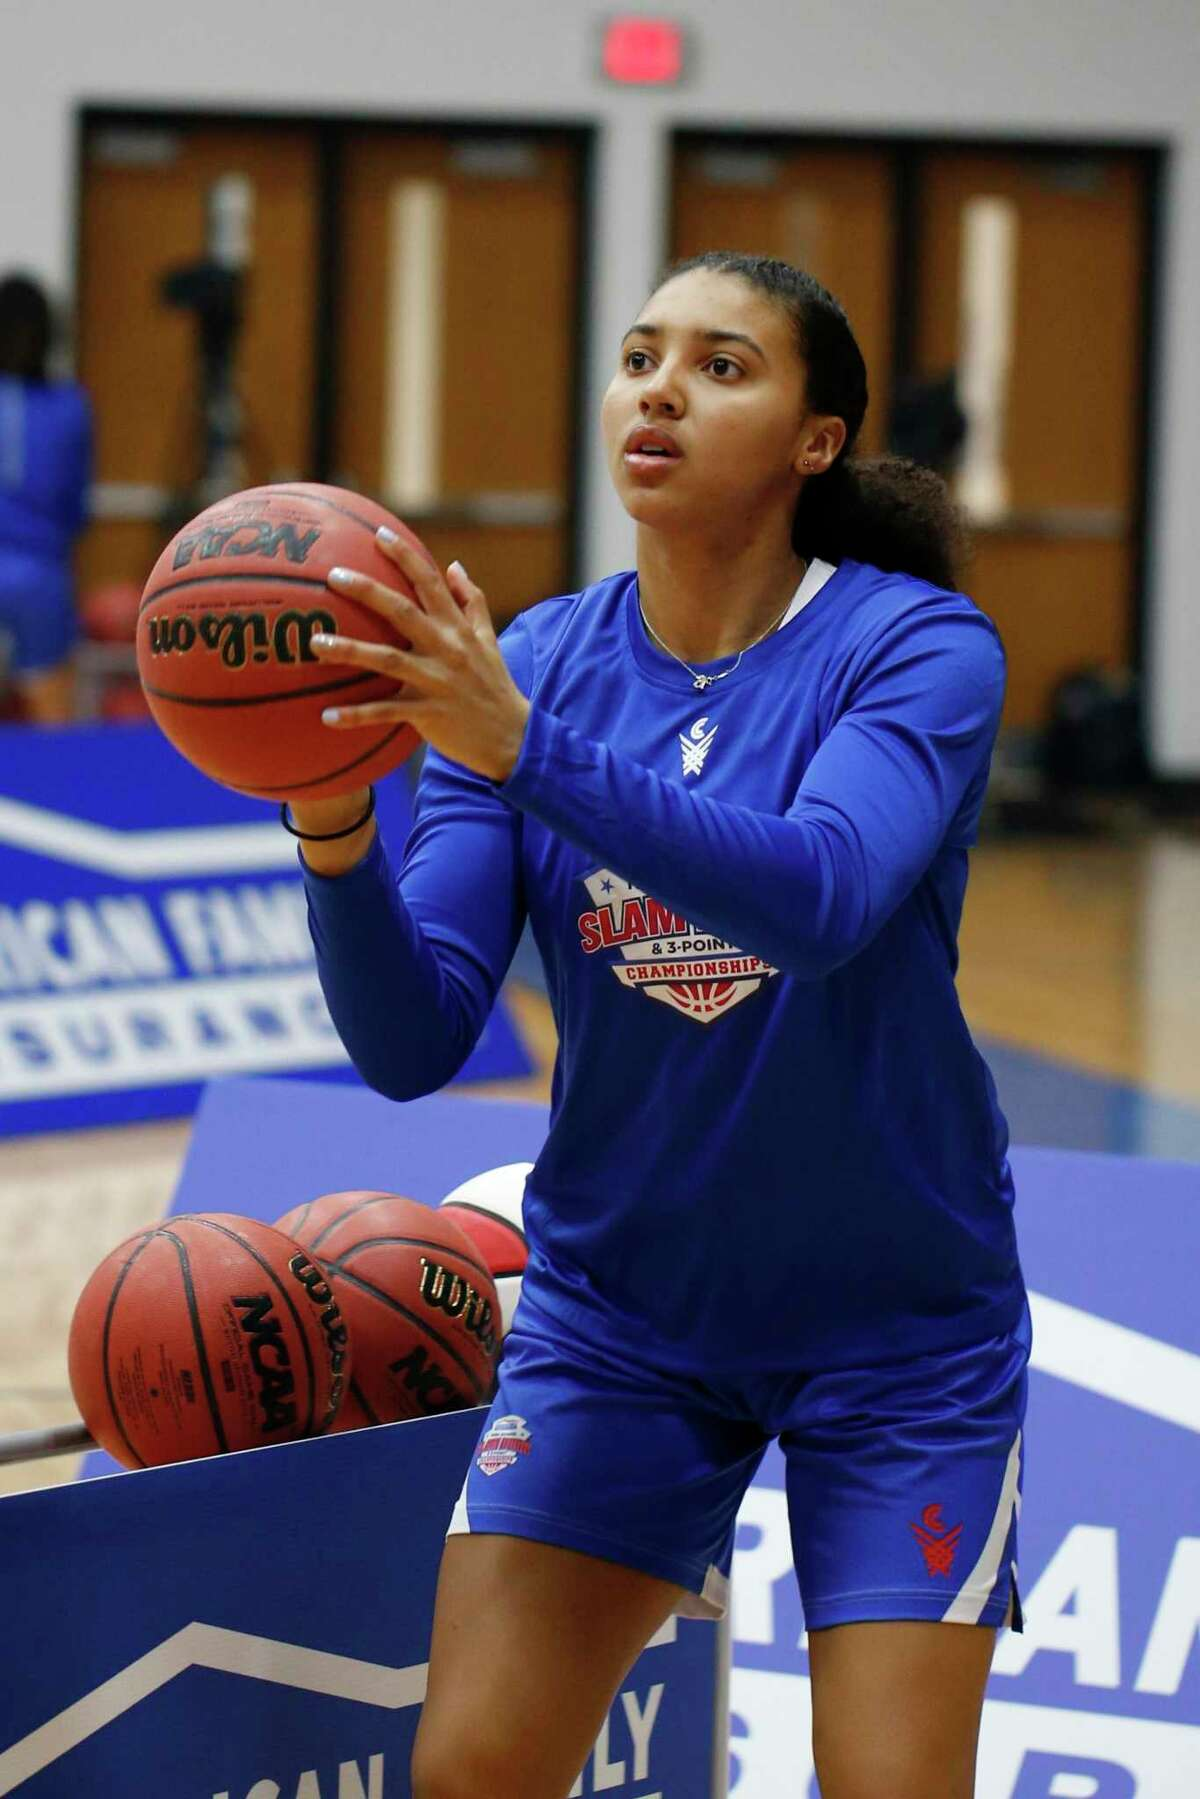 UConn freshman Azzi Fudd at the American Family Insurance High School Slam Dunk & 3 Point Championships in Indianapolis in March. Fudd has thrived during her first month at UConn.